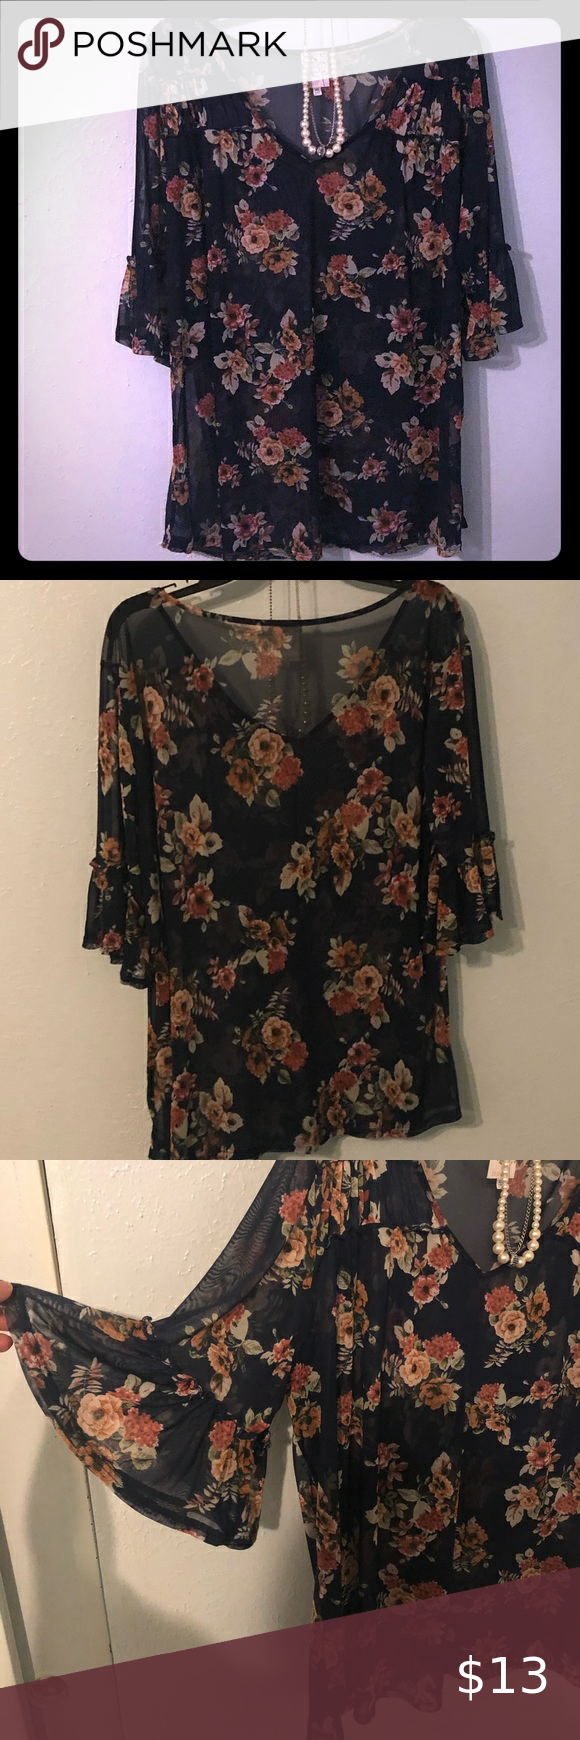 ??Very pretty floral, sheer blouse! ?? Sheer blouse! Navy with floral print. Has 3/4 bell sleeves. Very light weight and comfortable top! …